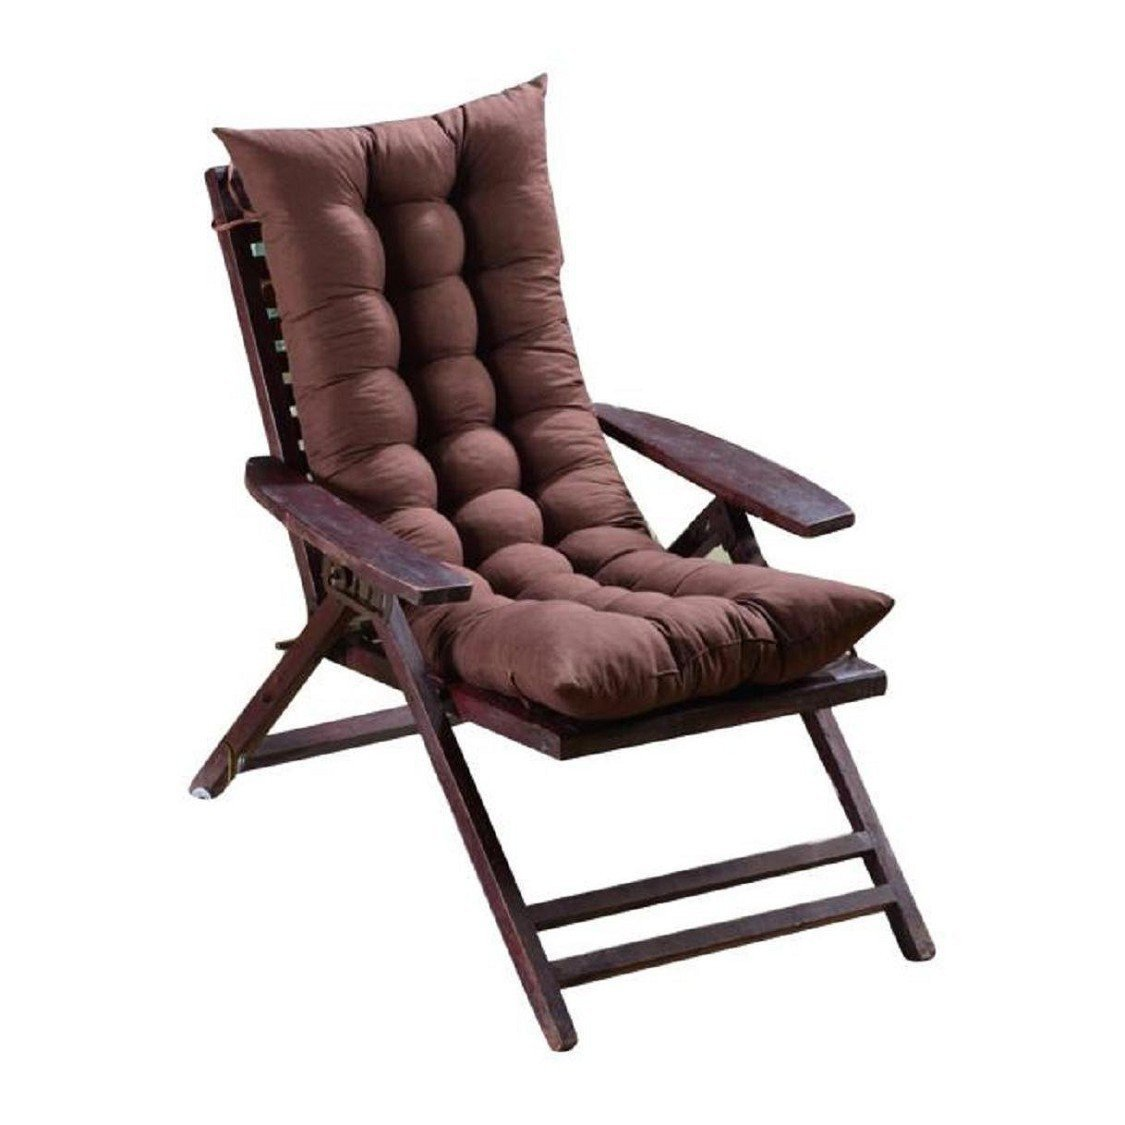 Most Comfortable Living Room Chair New Most fortable Living Room Chair Home Furniture Design